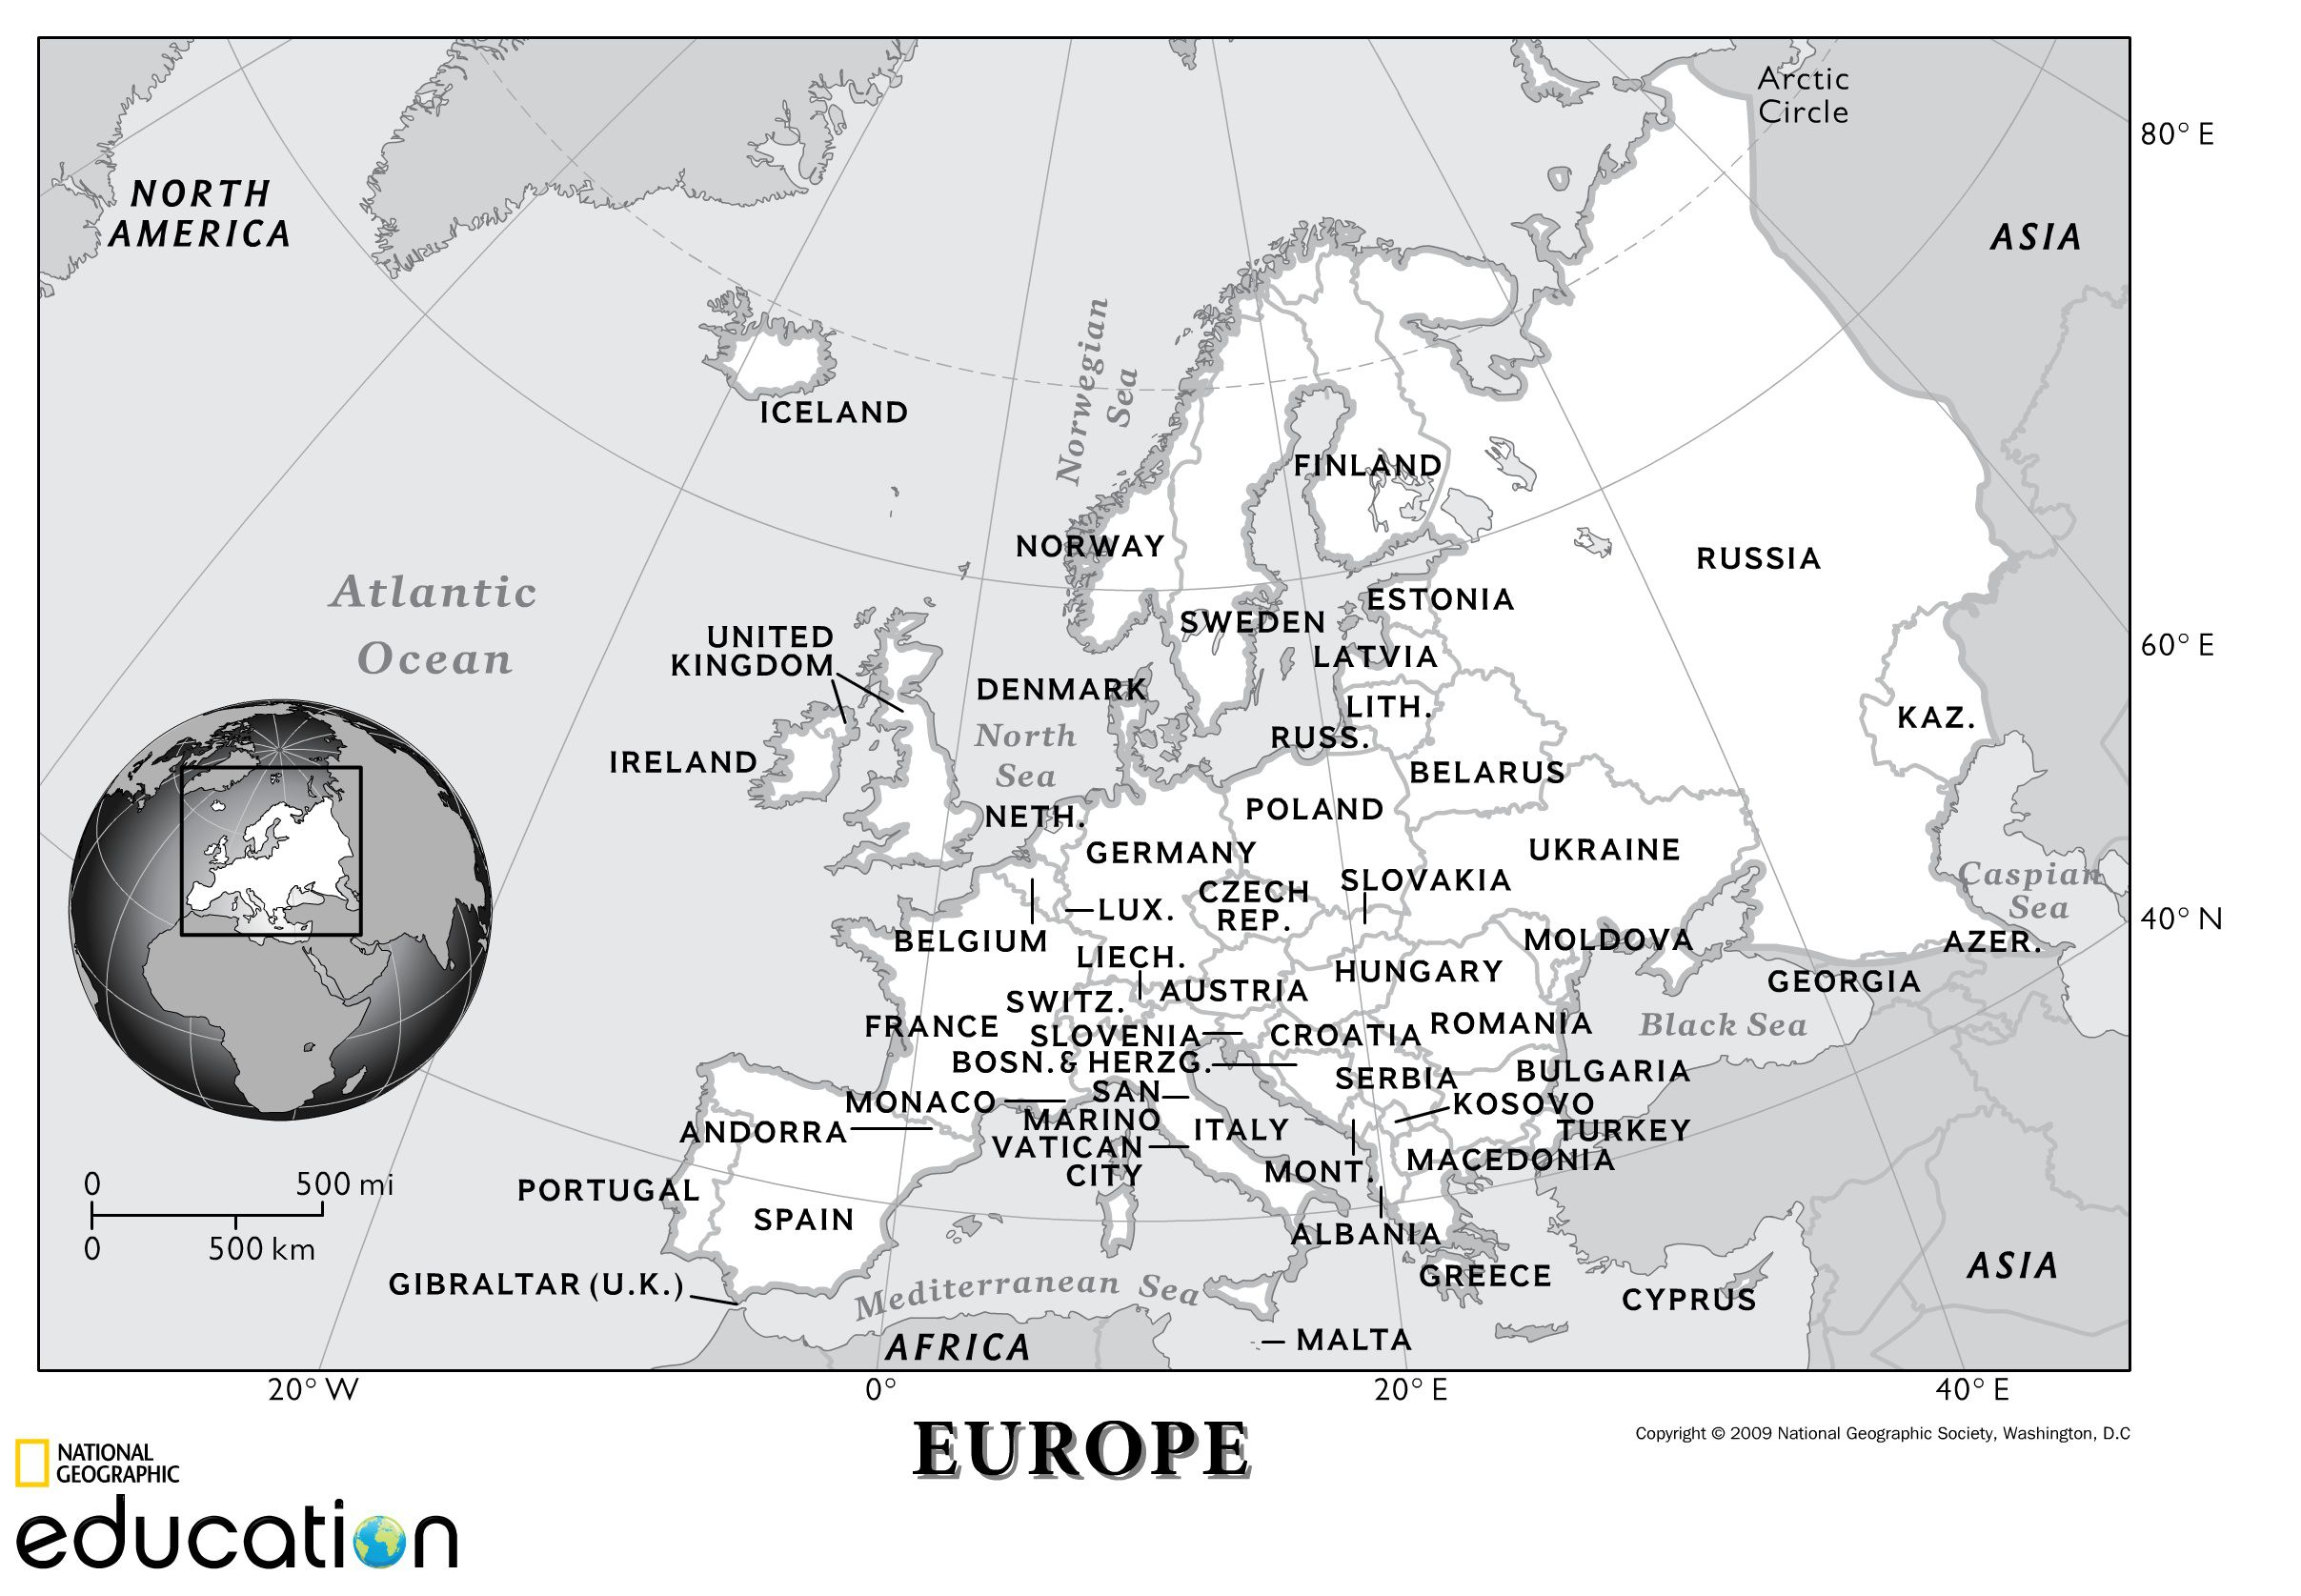 Europe Human Geography National Geographic Society - Us territorial influence 1914 map answers